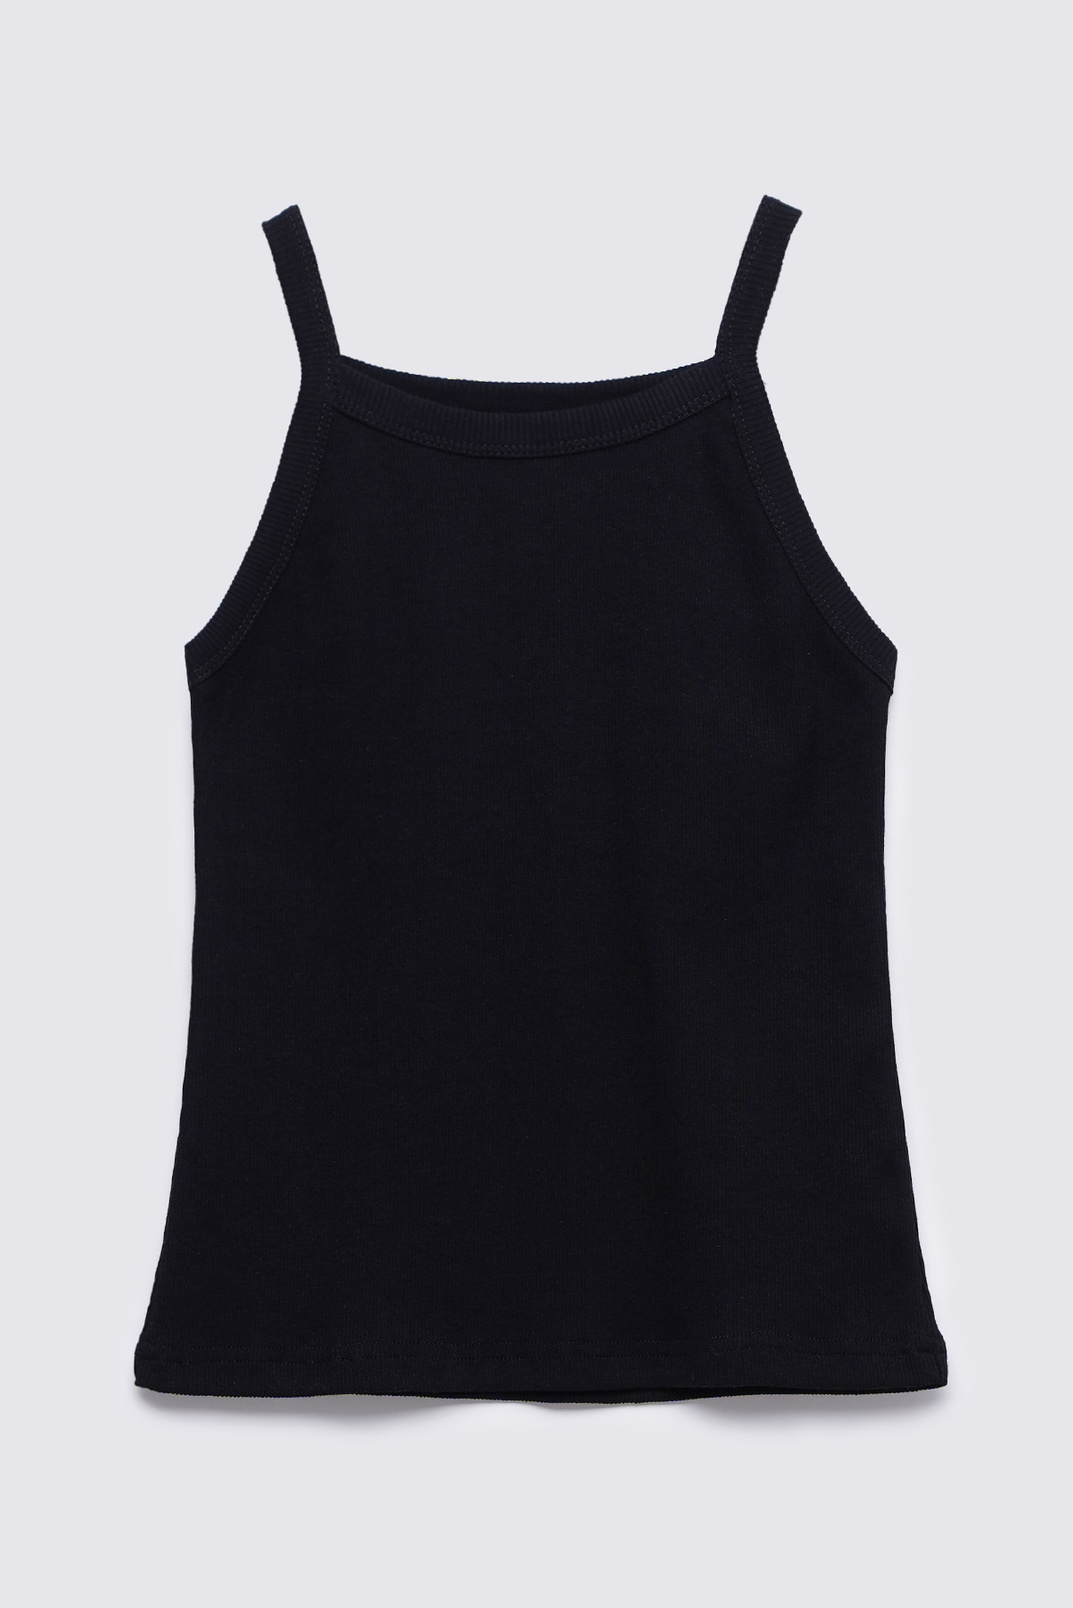 Tank top with thin straps, Black, M